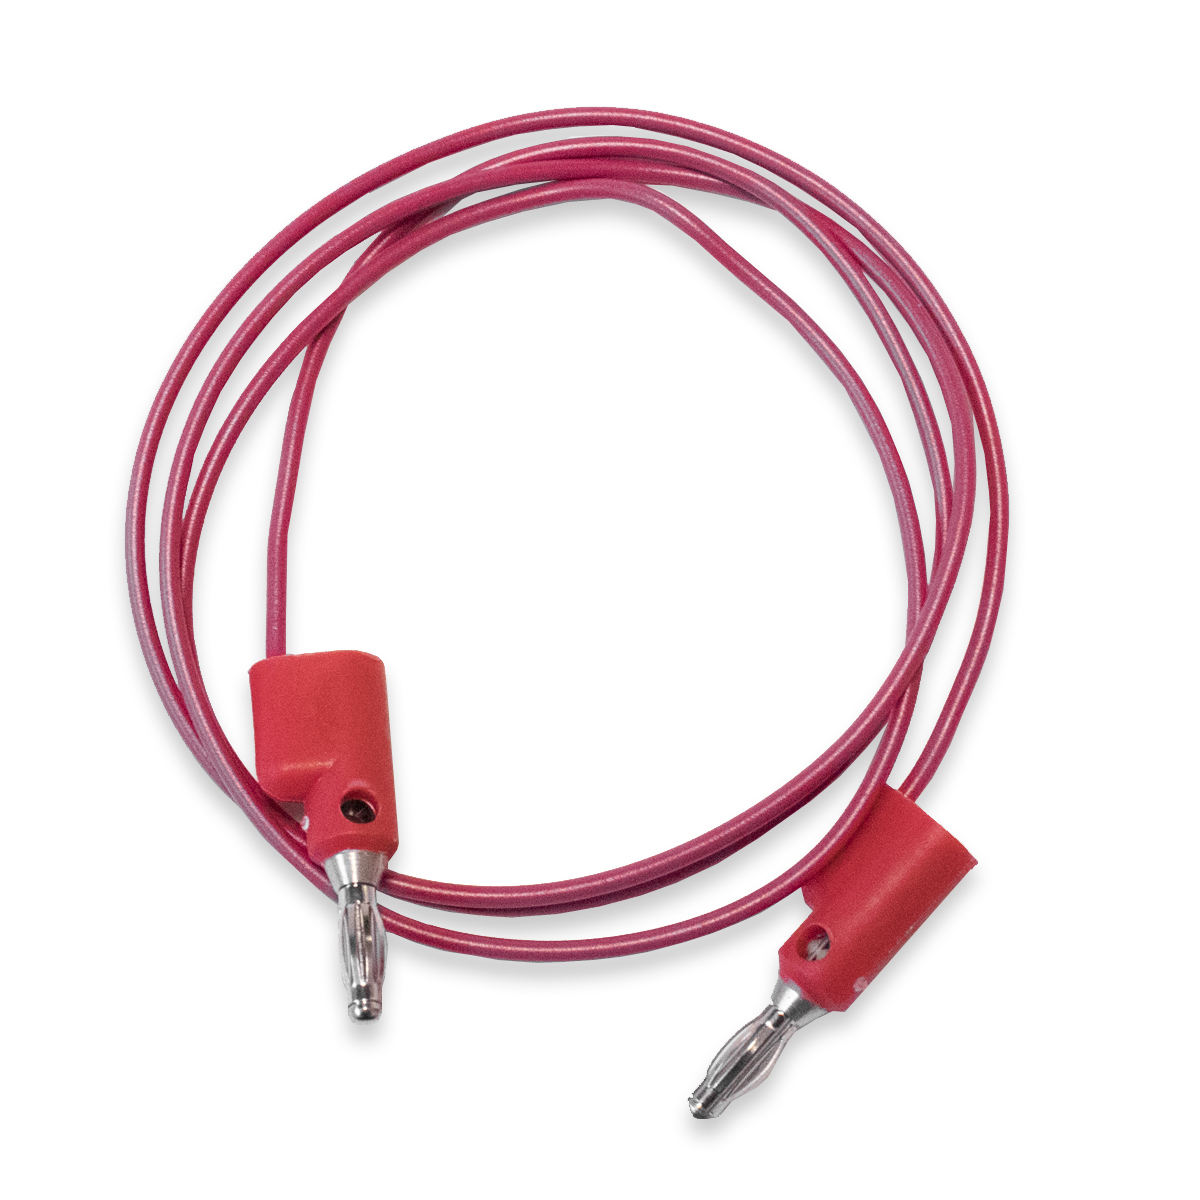 Test Lead, Overmolded, Stackable 4mm Banana Plugs 20 awg 60""